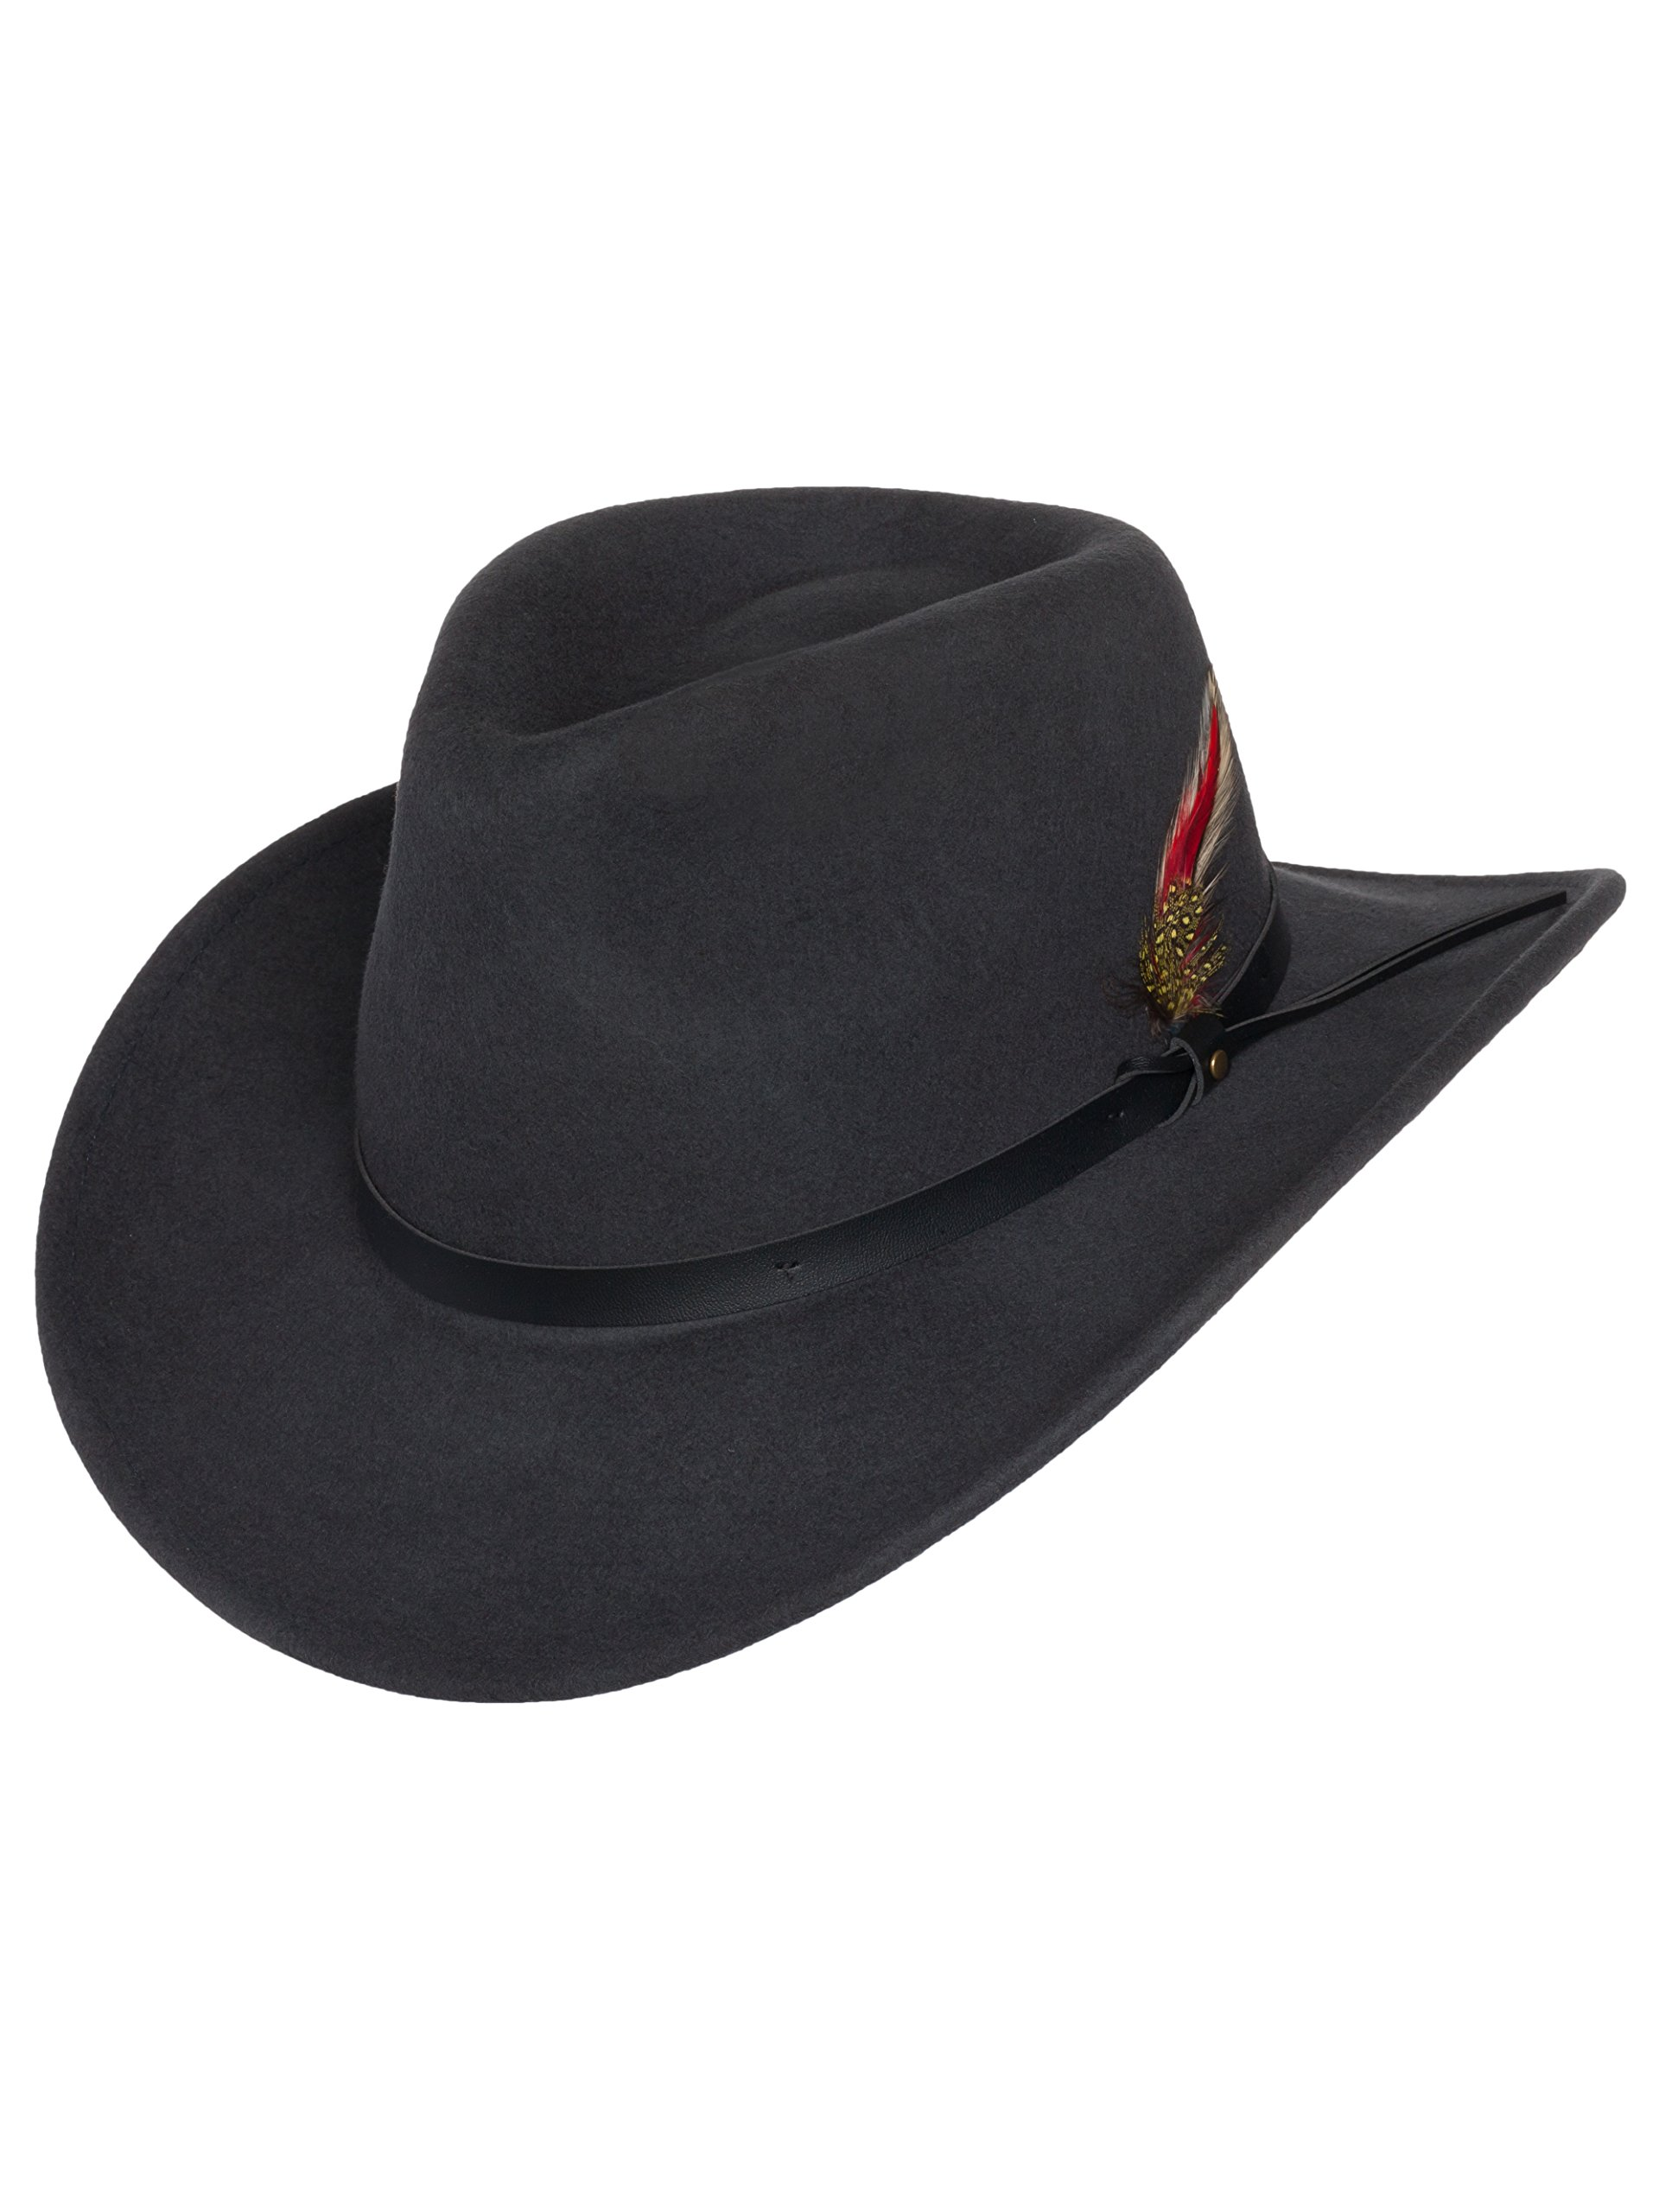 6de3ae6b182 Men s Outback Wool Cowboy Hat Montana Gray Crushable Western Felt by Silver  Canyon